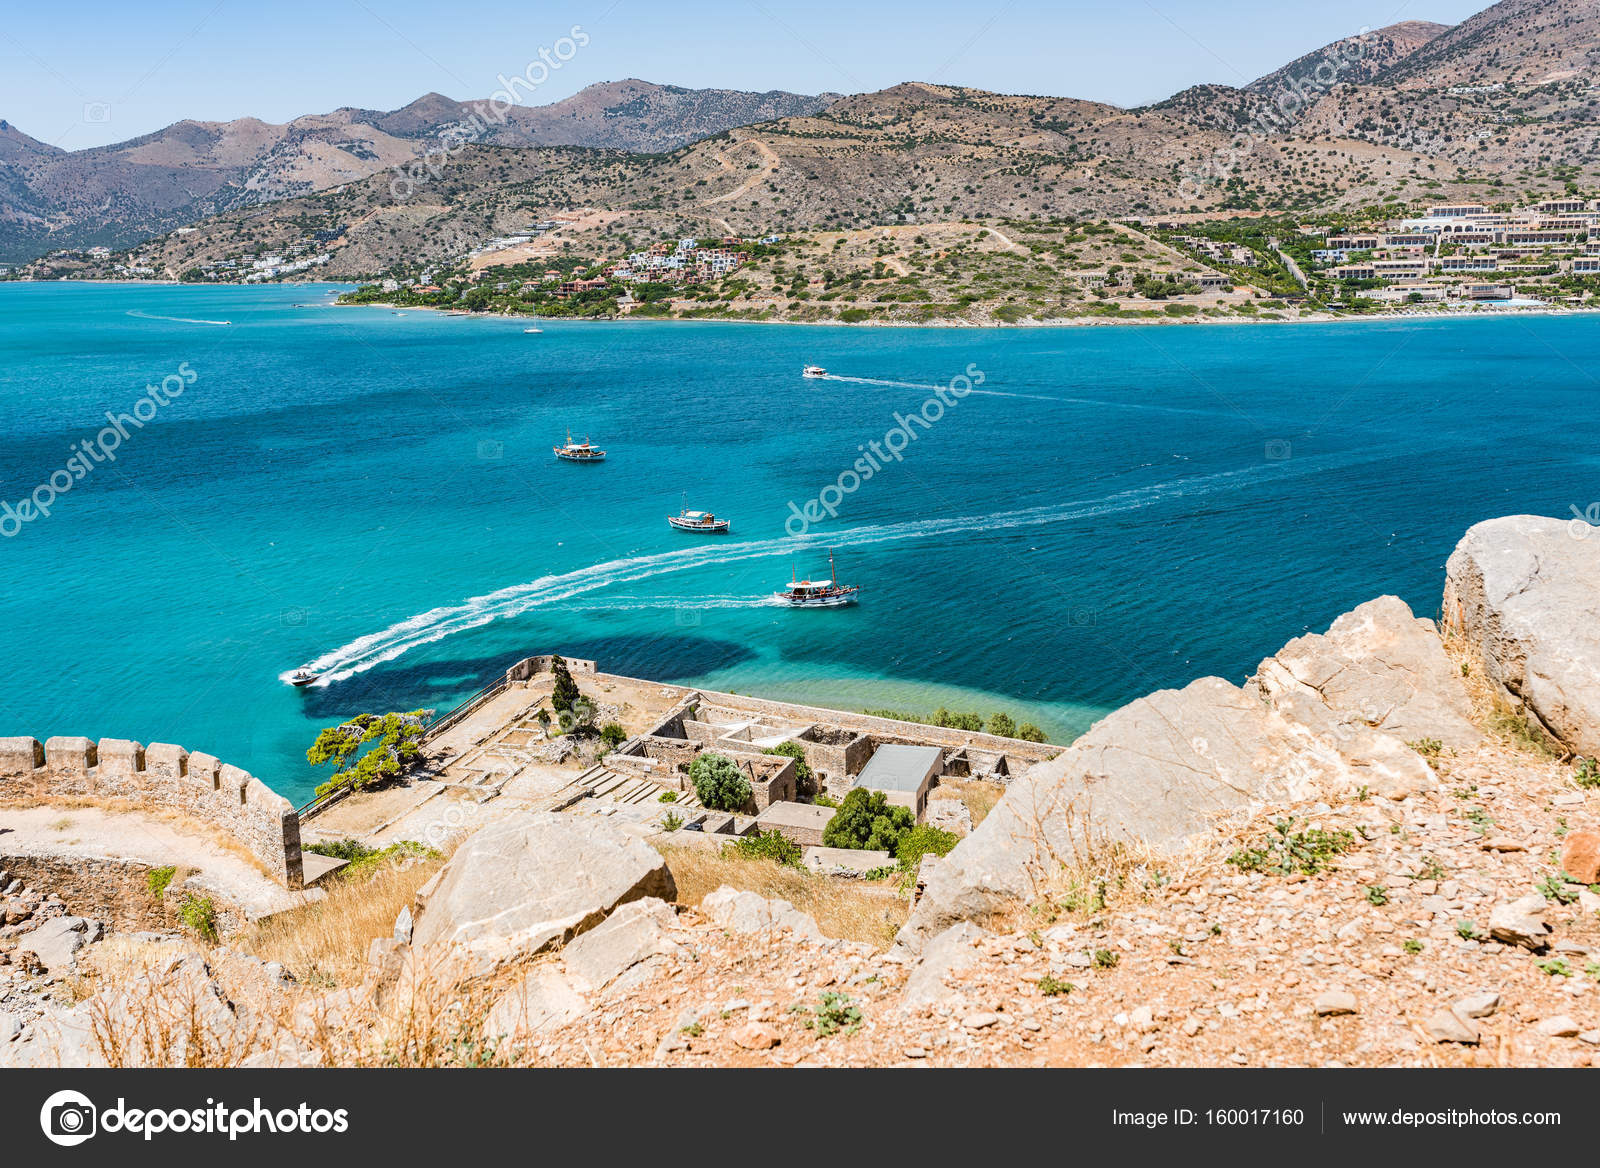 Top of Spinalonga fortress. View to blue aegian sea with boats, and Mirabello coast.